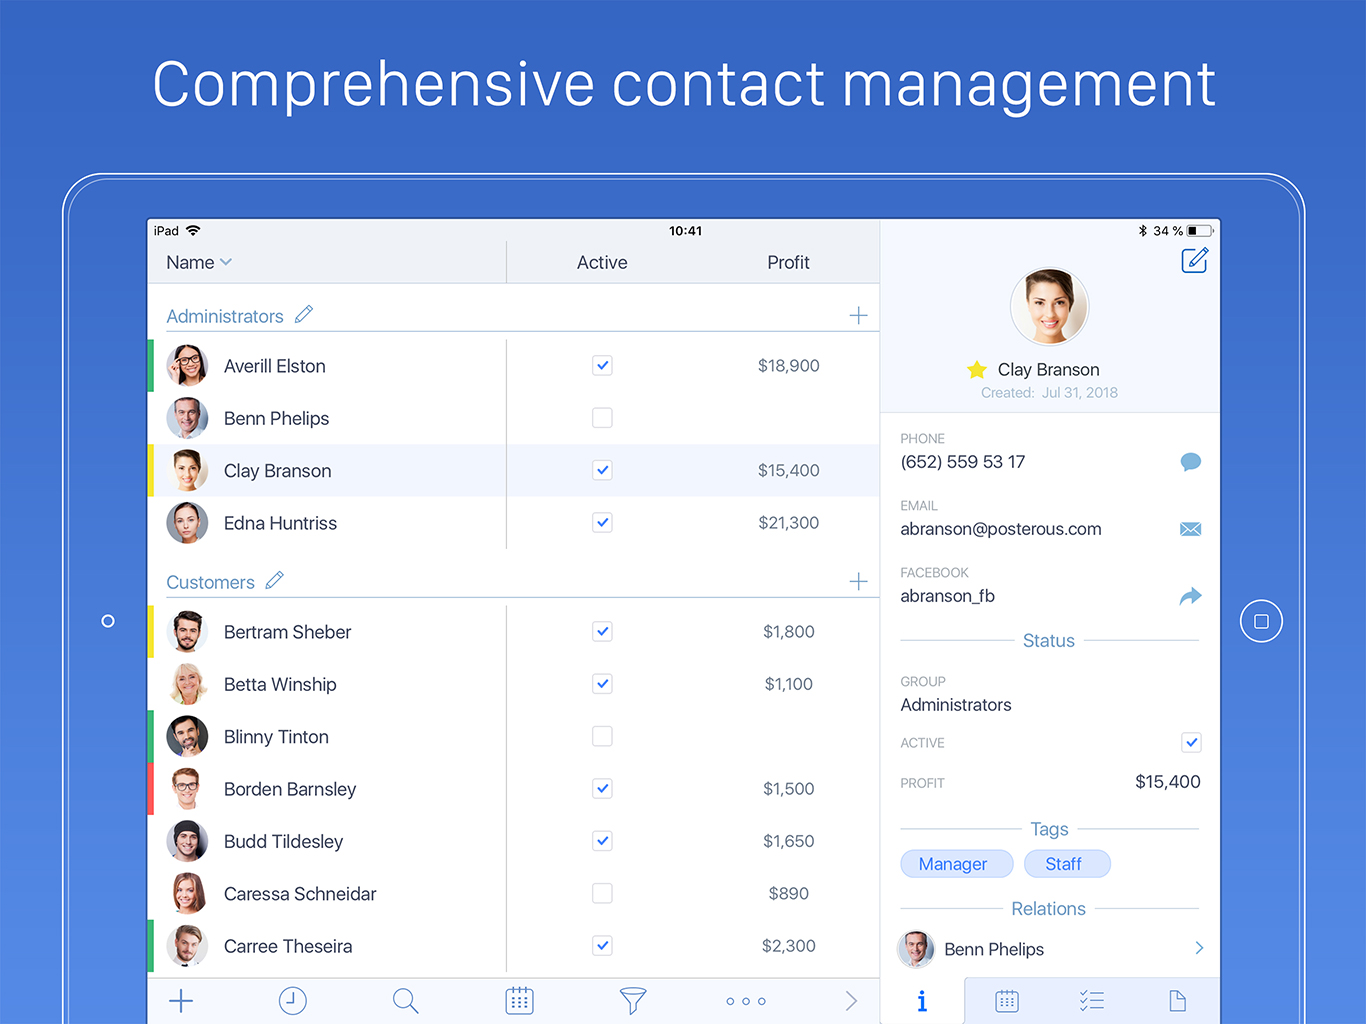 New Advanced Contact Manager Brings Powerful CRM Features to iOS Image